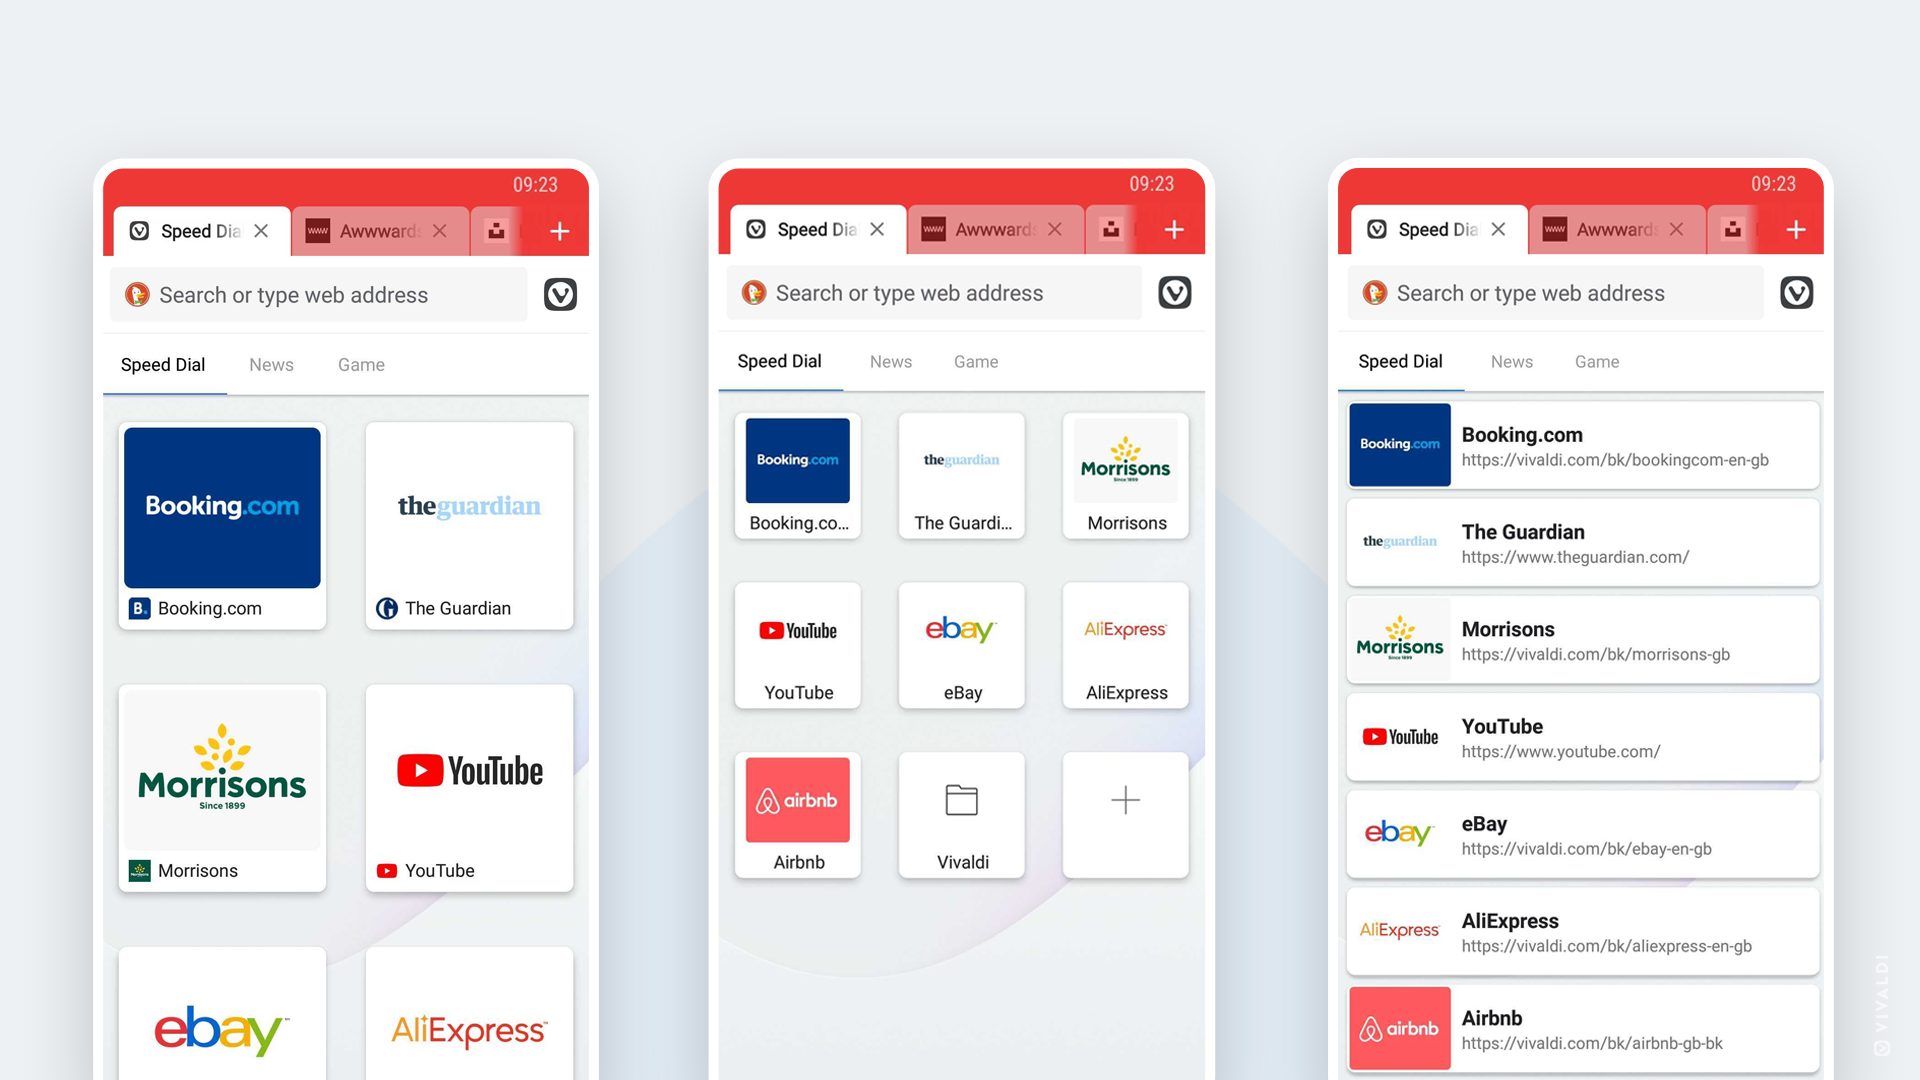 Vivaldi on Android 3.4 new speed dial layouts.